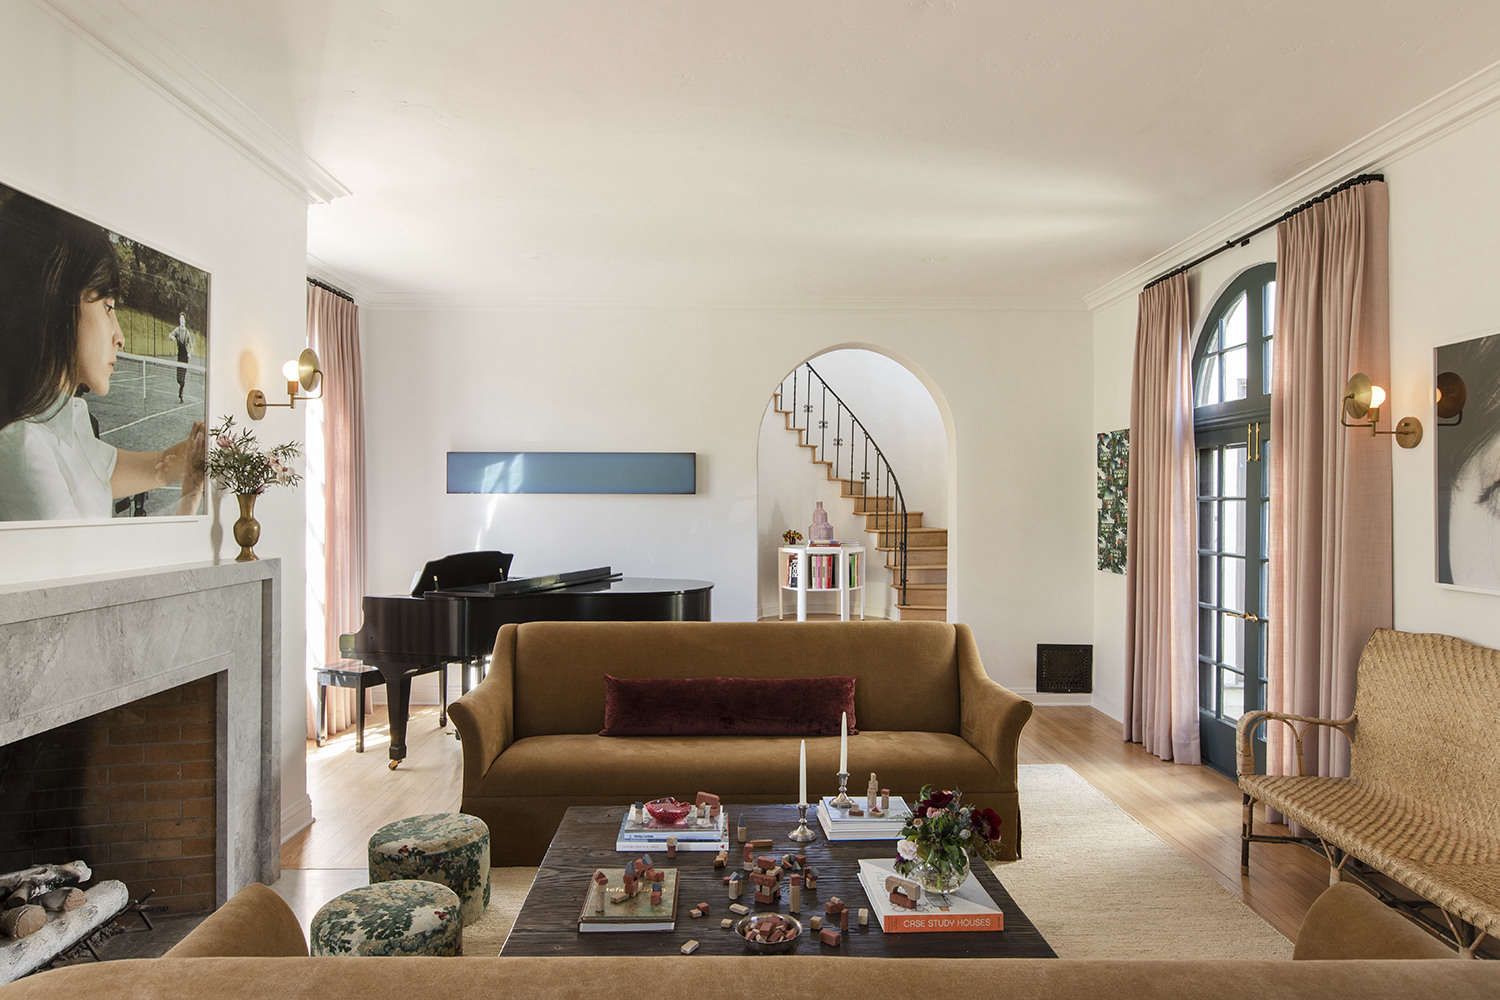 rich and warm tones balance the living space. from la autumnal: a \19\20s house 9